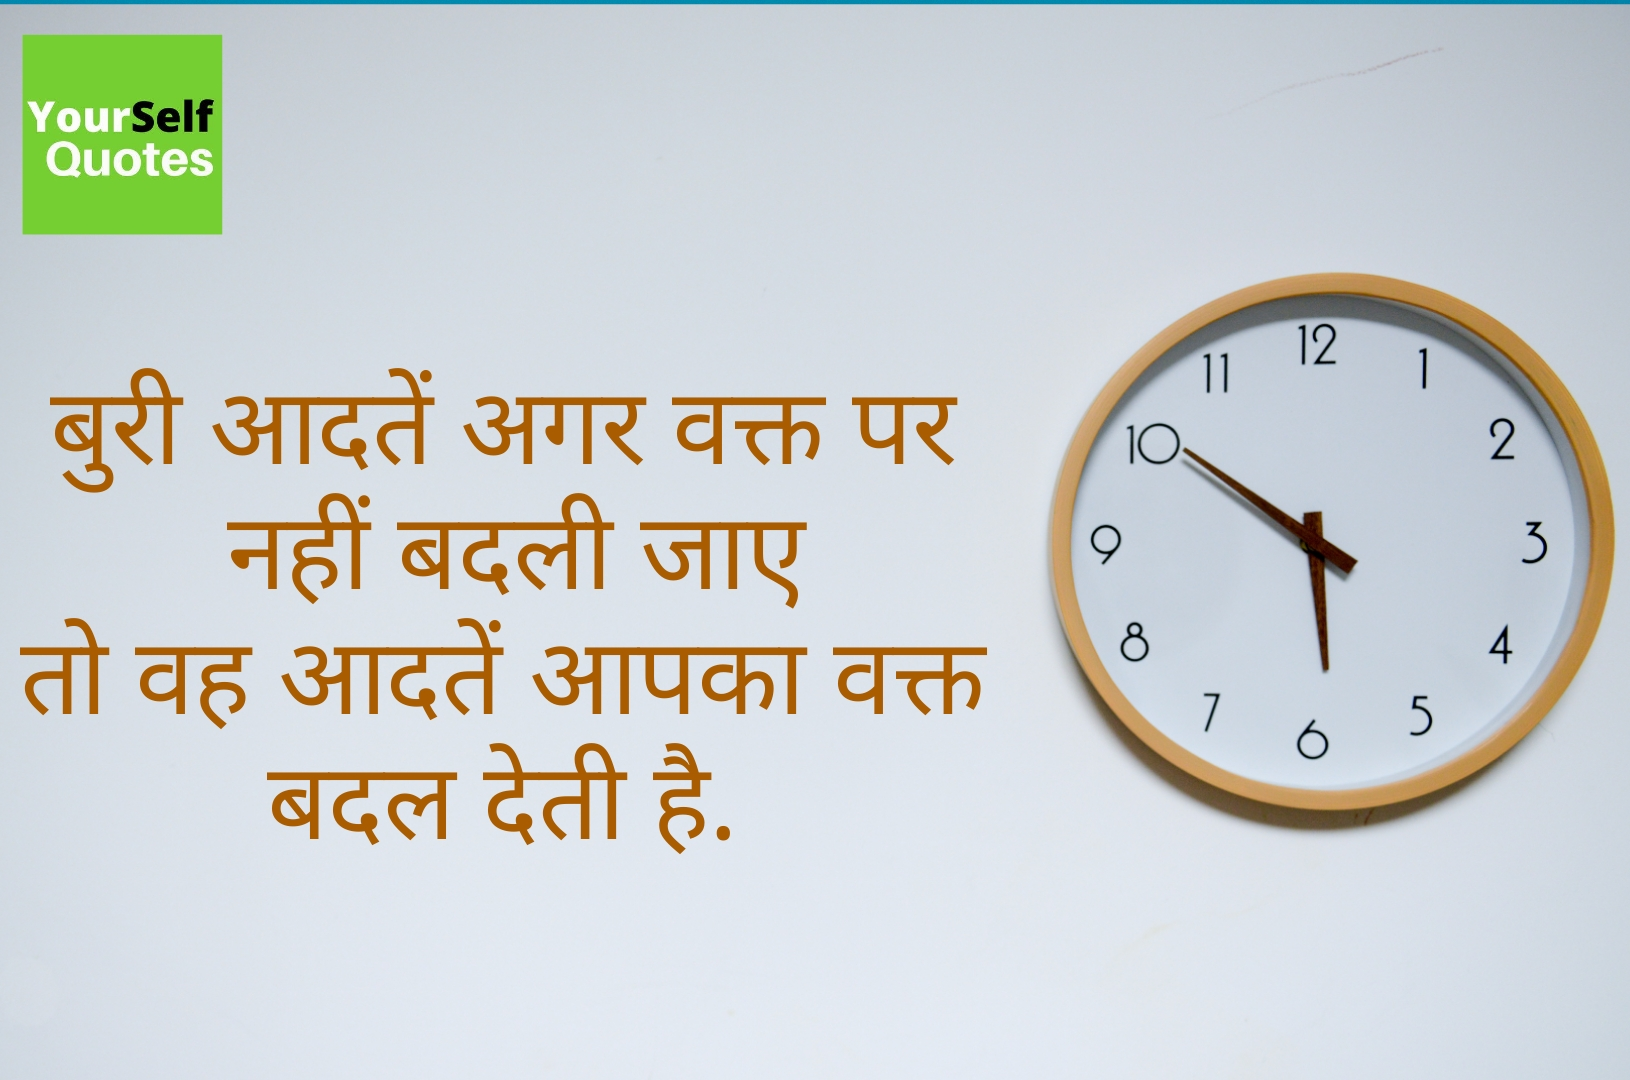 Motivational Thoughts in Hindi on Life